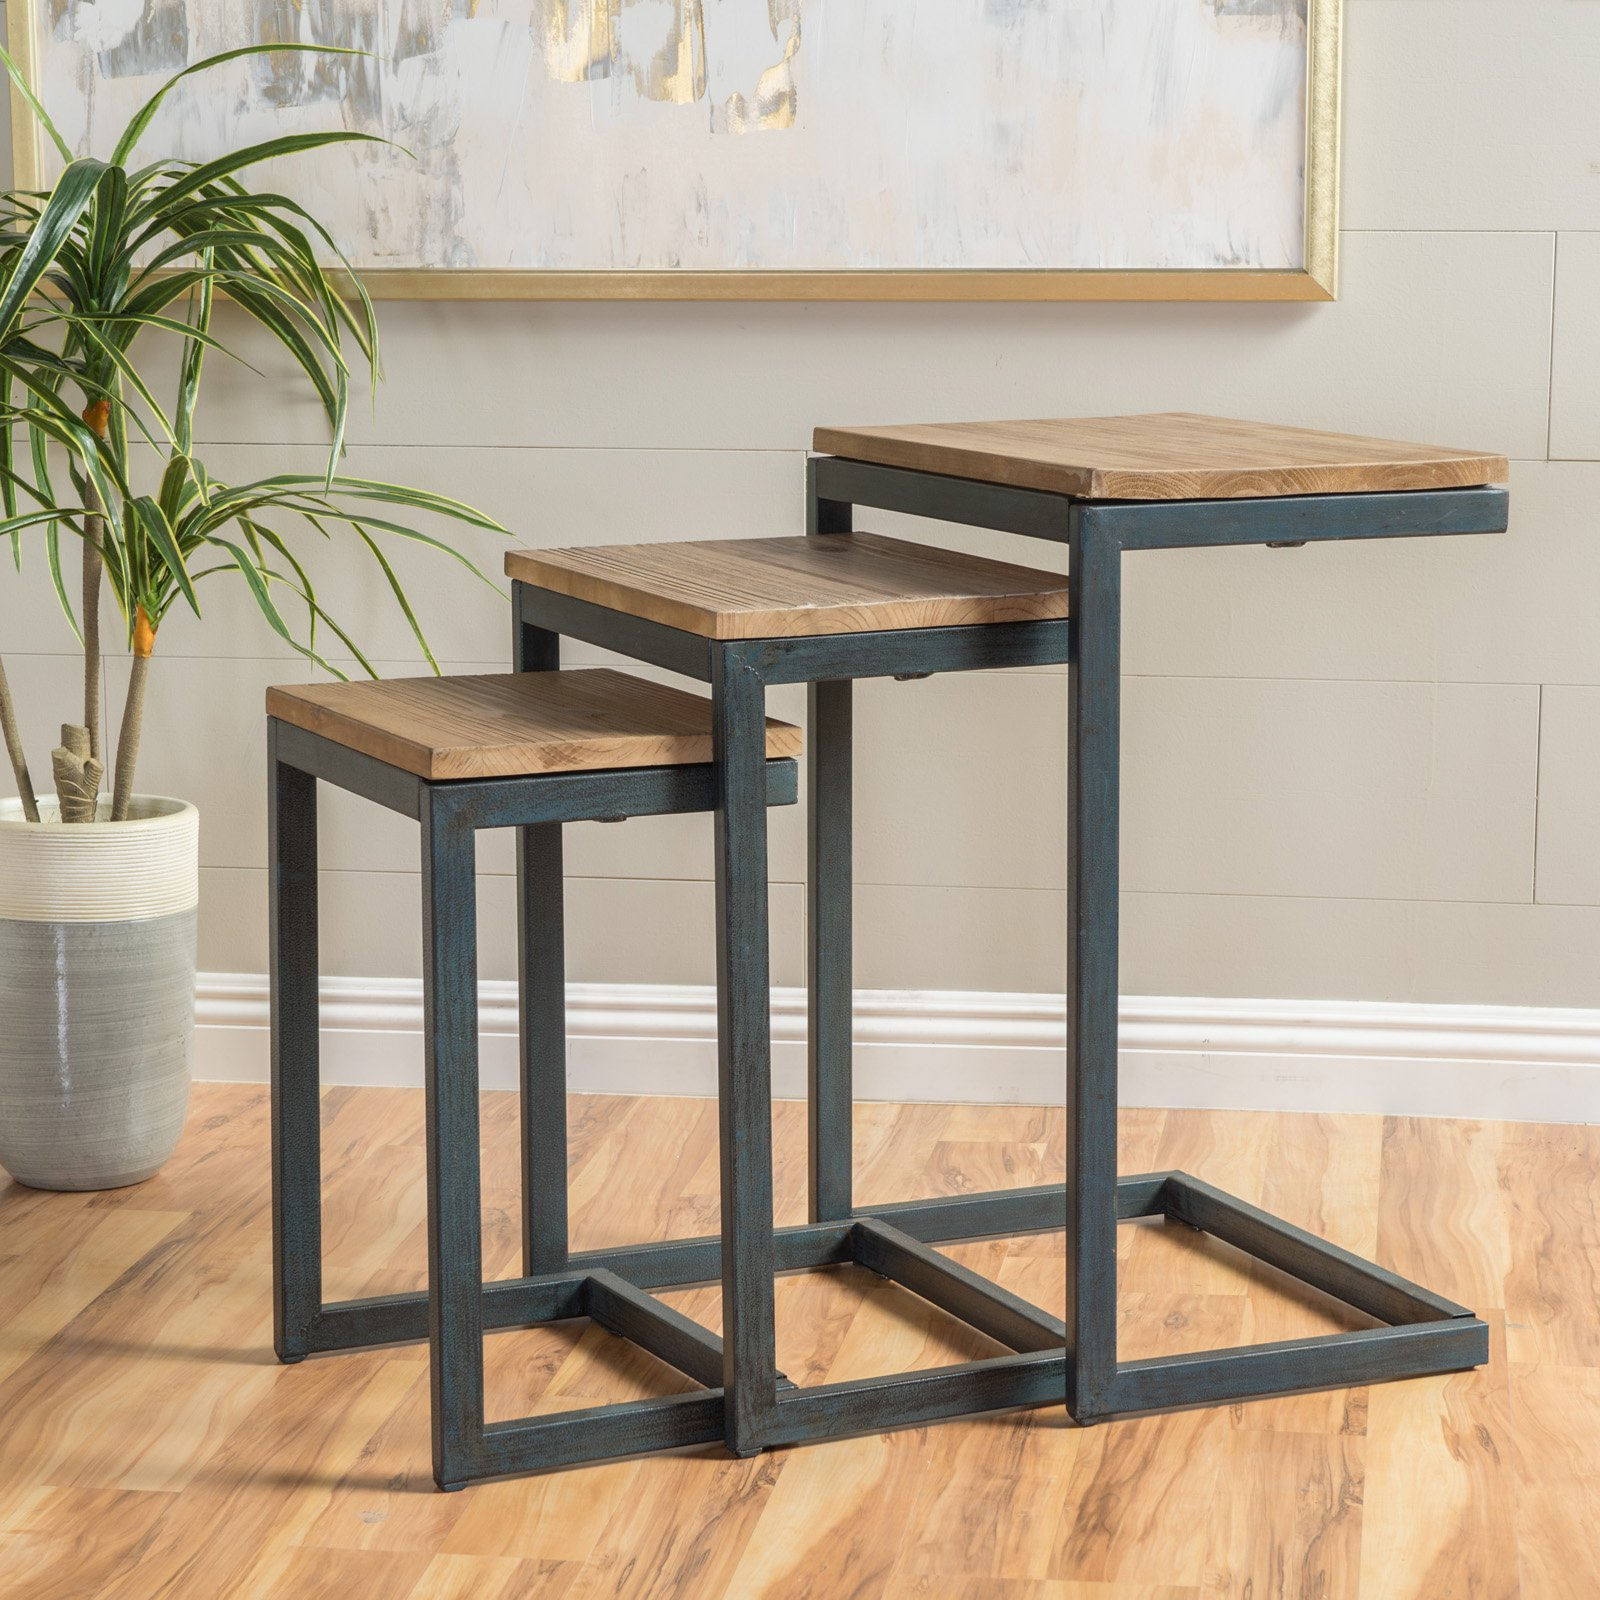 Haus Firwood Antique Nesting Tables